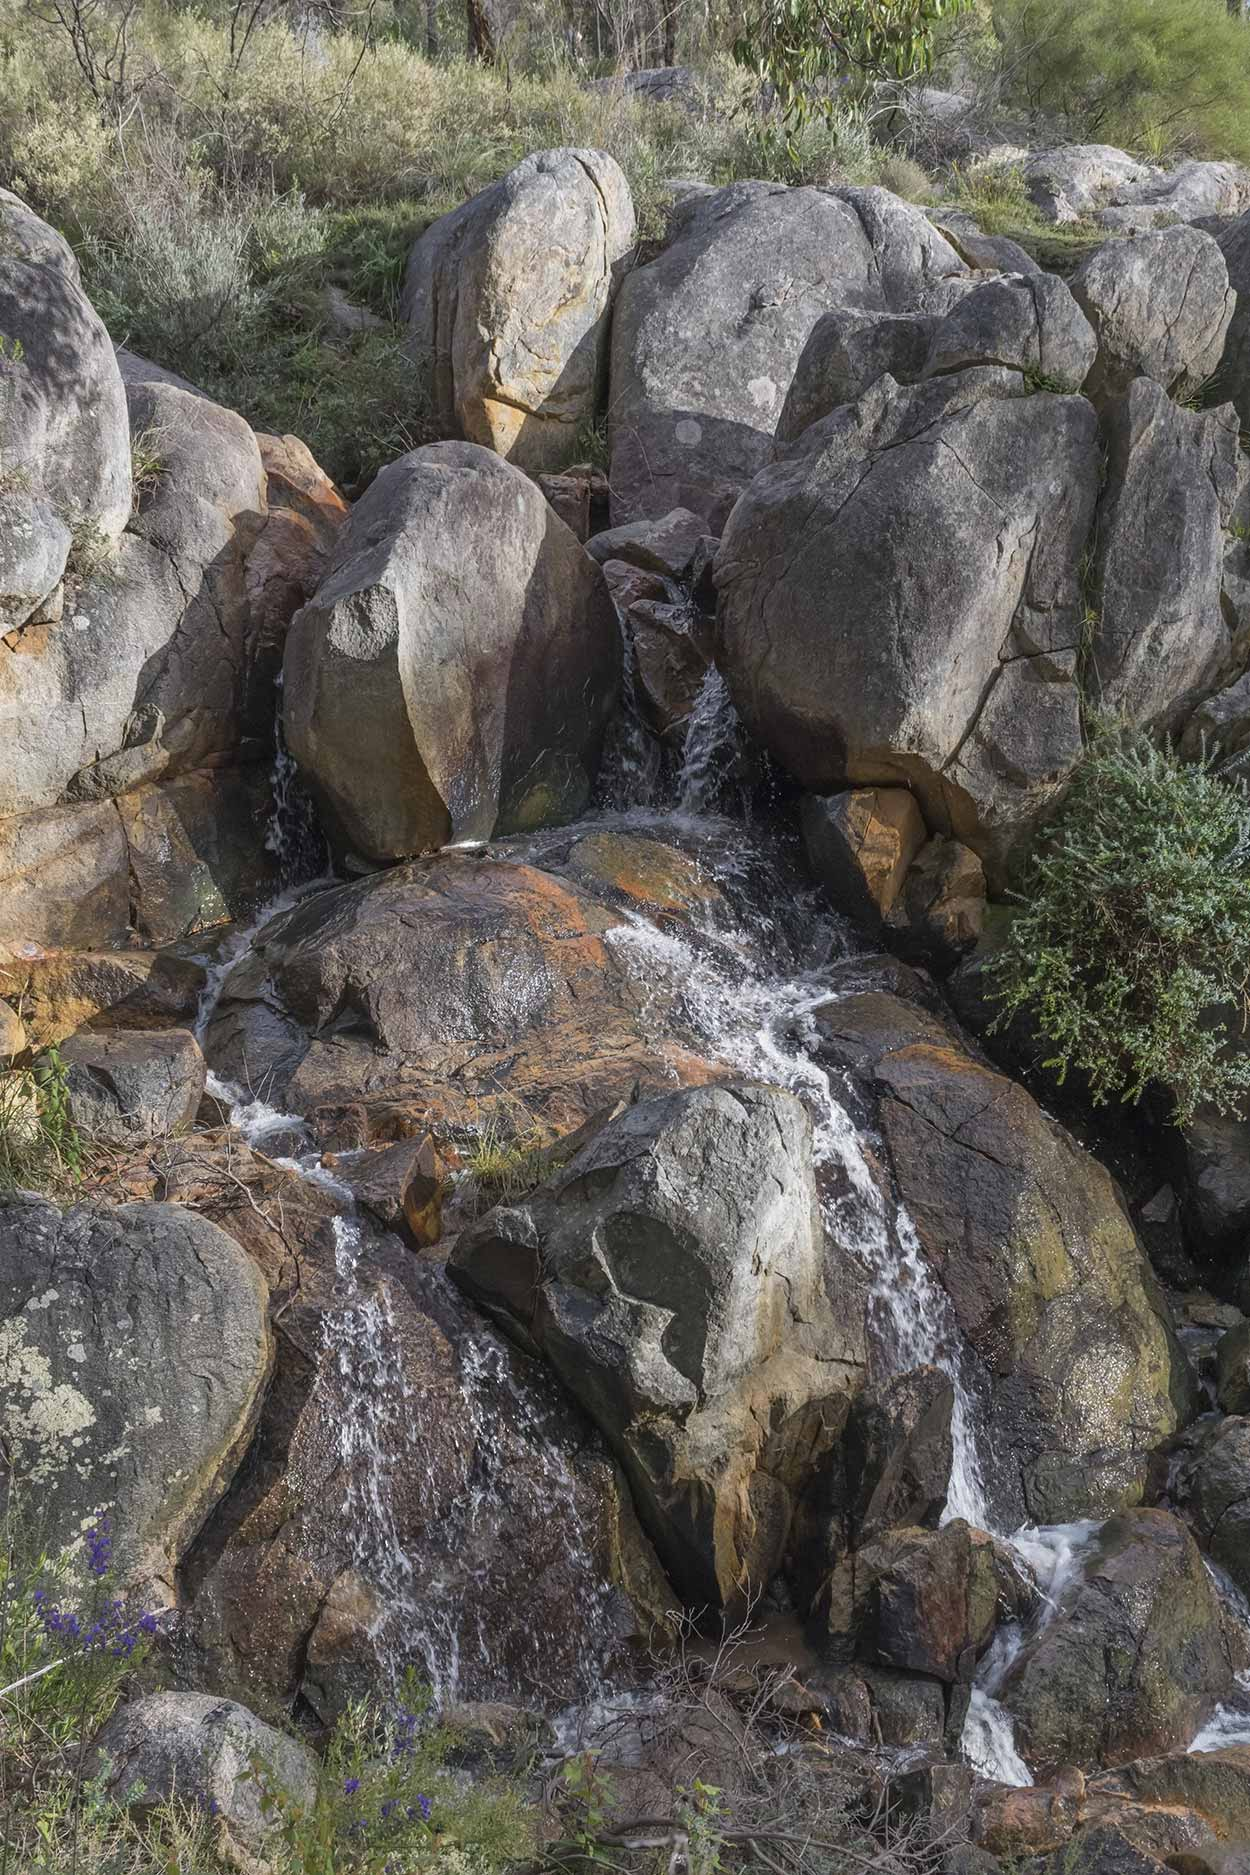 Waterfall on the Bibbulmun Track, Kalamunda National Park, Perth, Western Australia